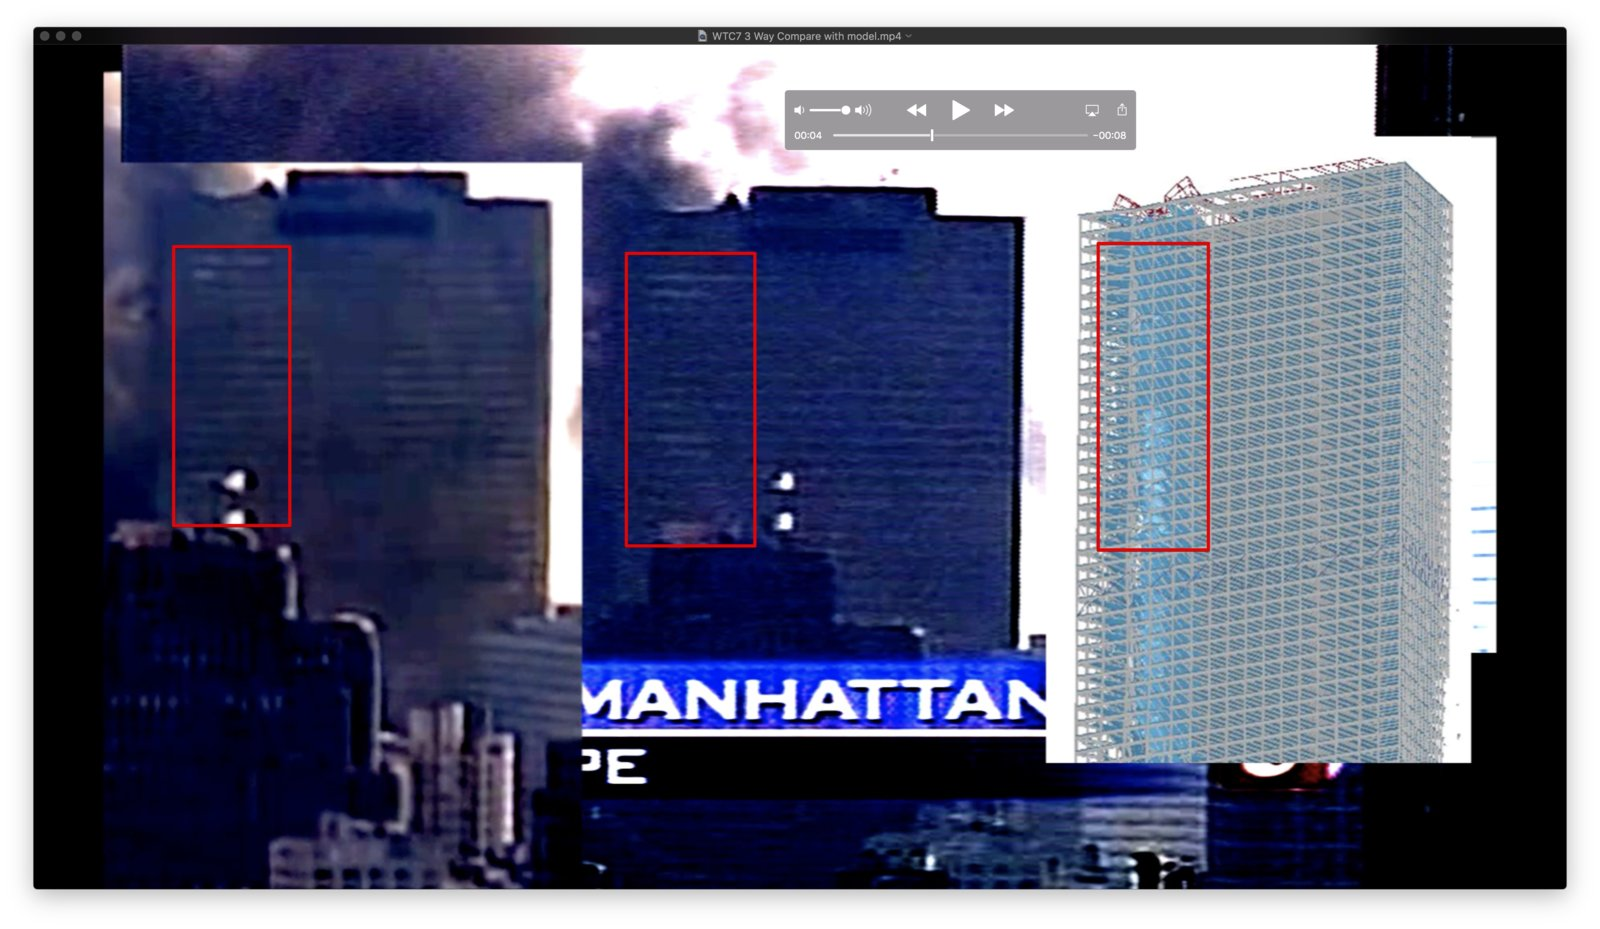 WTC7 3 Way Compare with model.mp4 2018-01-11 13-13-30.jpg